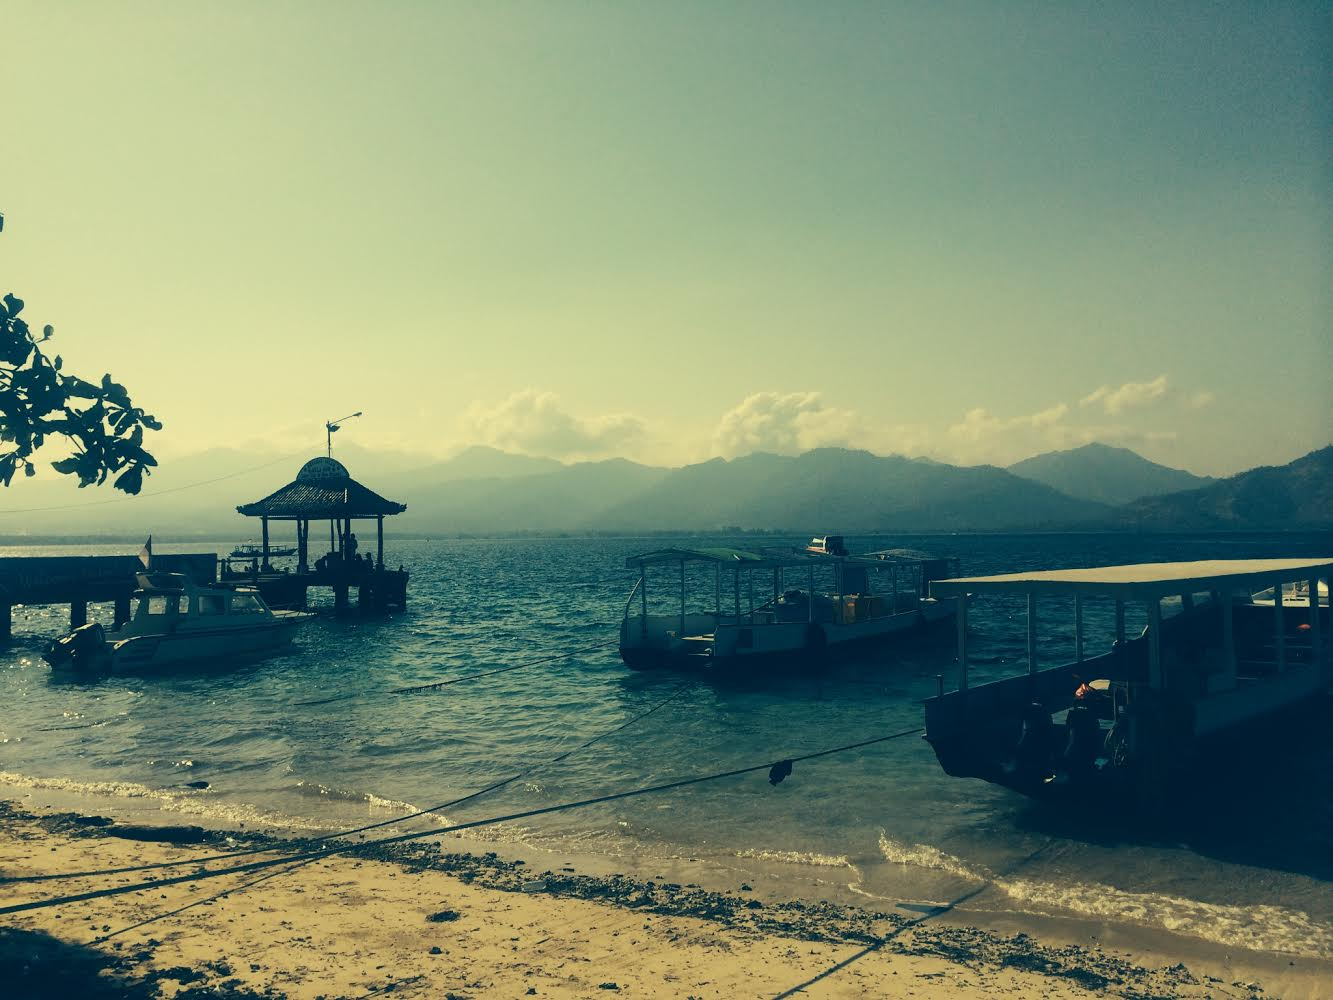 Idc Dive Resort Gili Air Indonesia Instructor Islands Bungalows Oceans